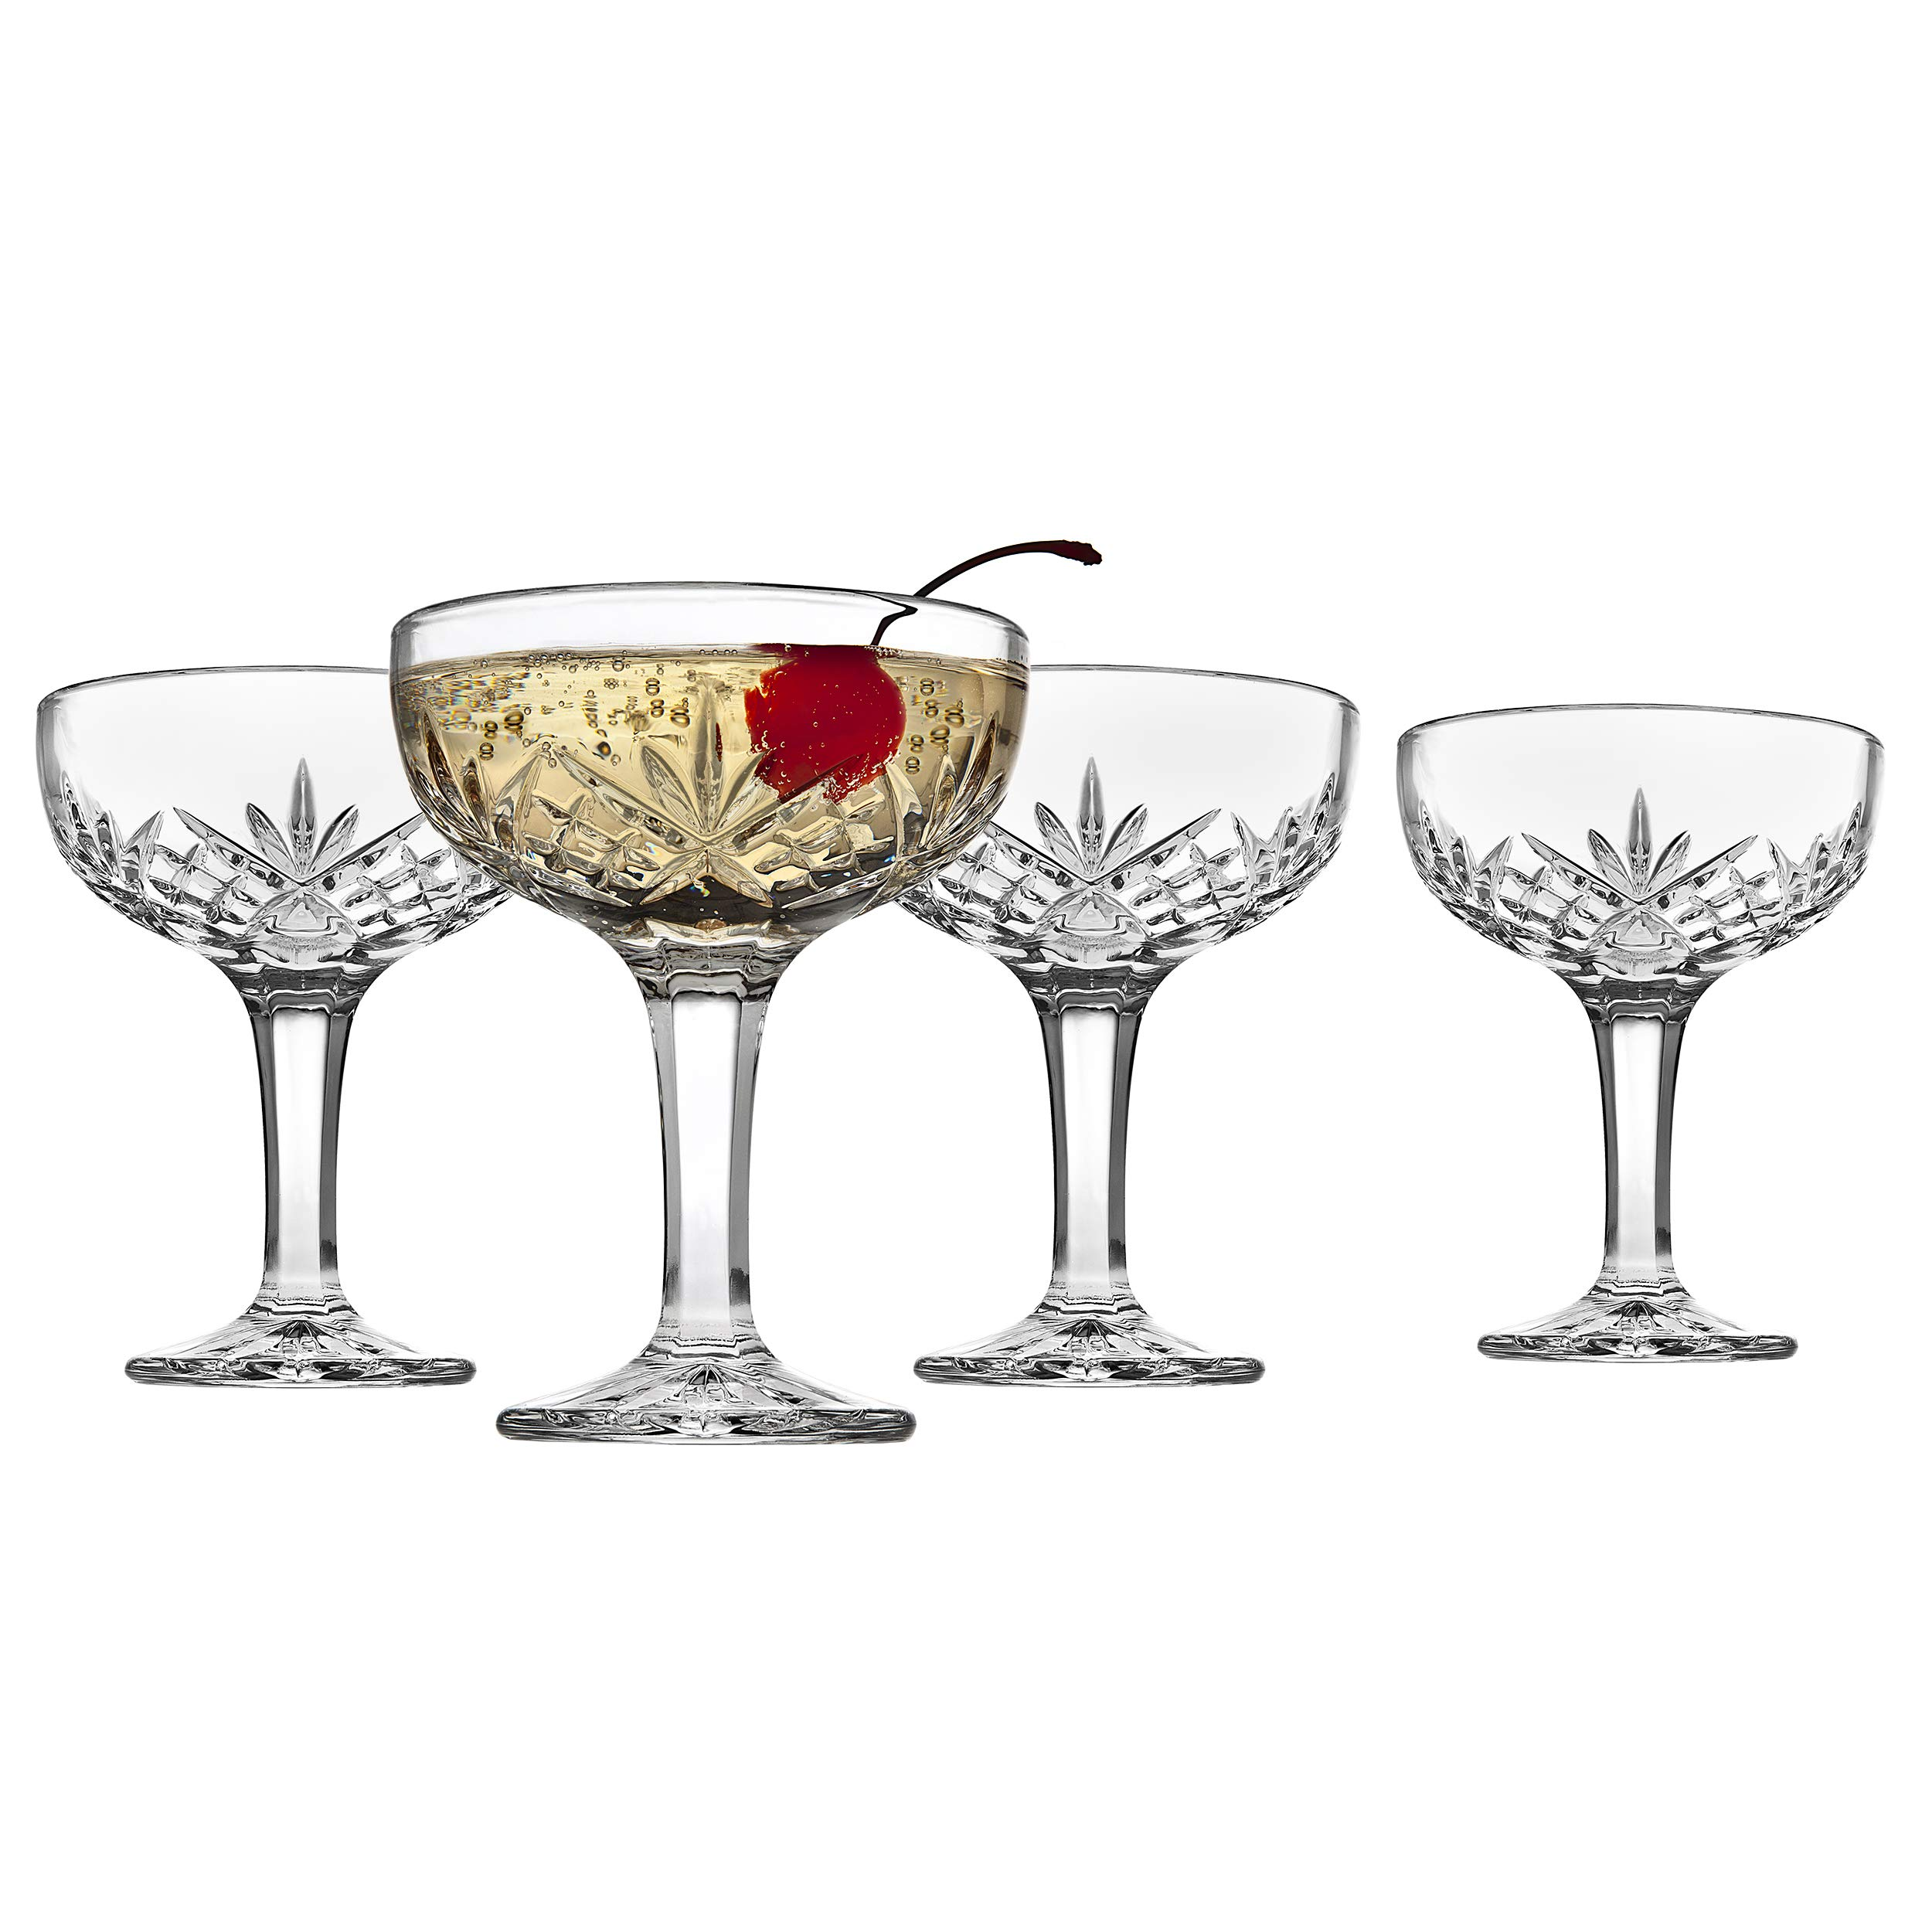 Godinger Champagne Coupe Barware Glasses - Set of 4, Dublin Crystal Collection